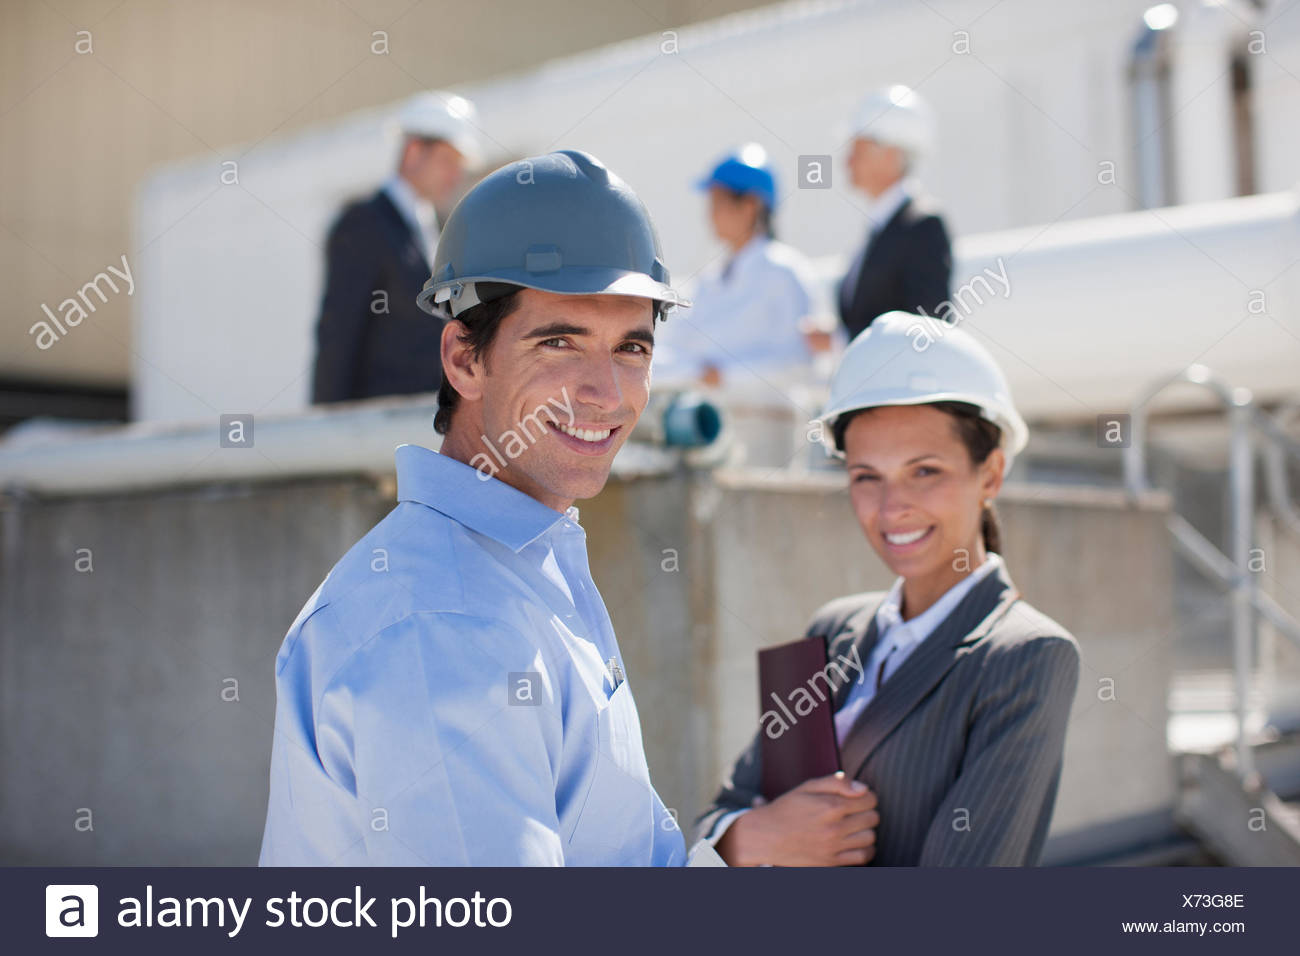 Business people in hard-hats outdoors - Stock Image